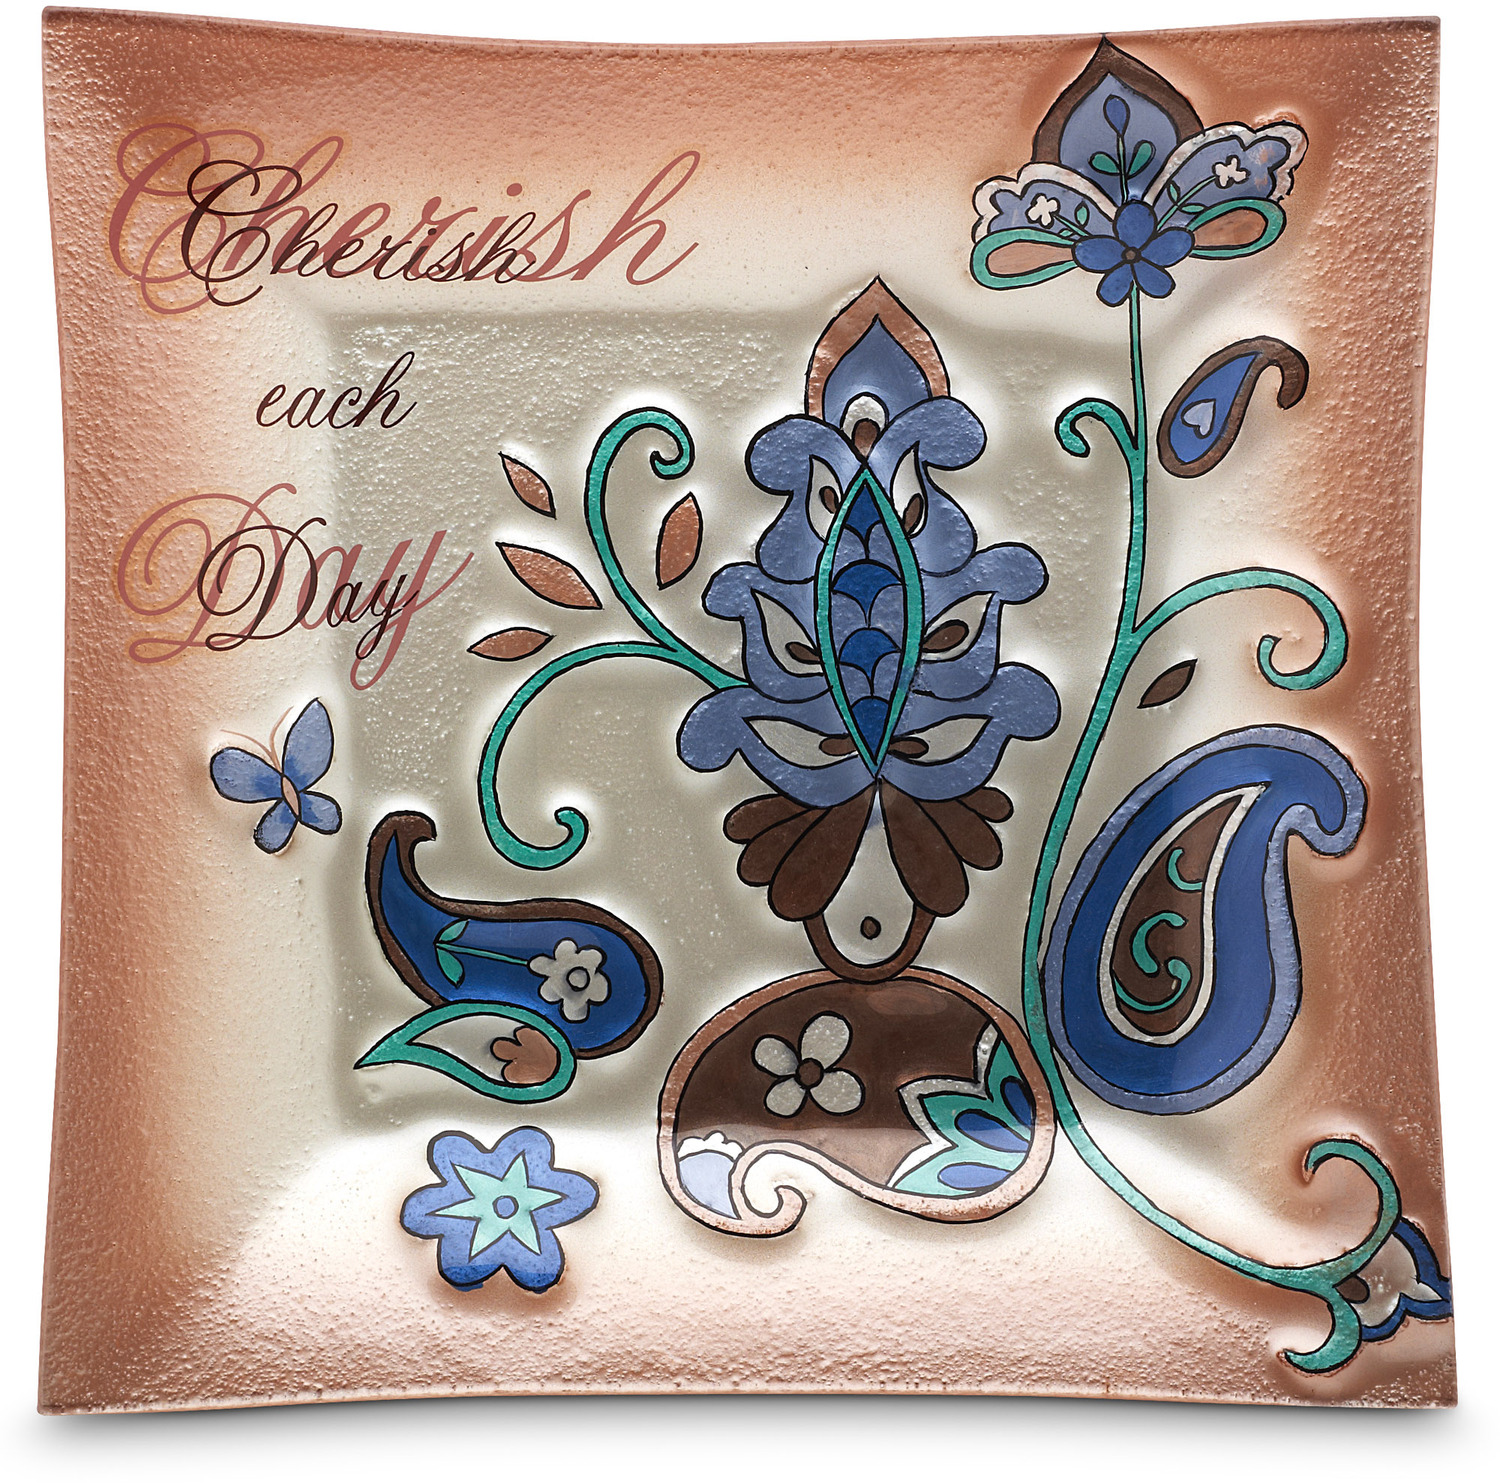 Cherish Each Day 10 Square Fused Glass Plate Perfectly Paisley Pavilion